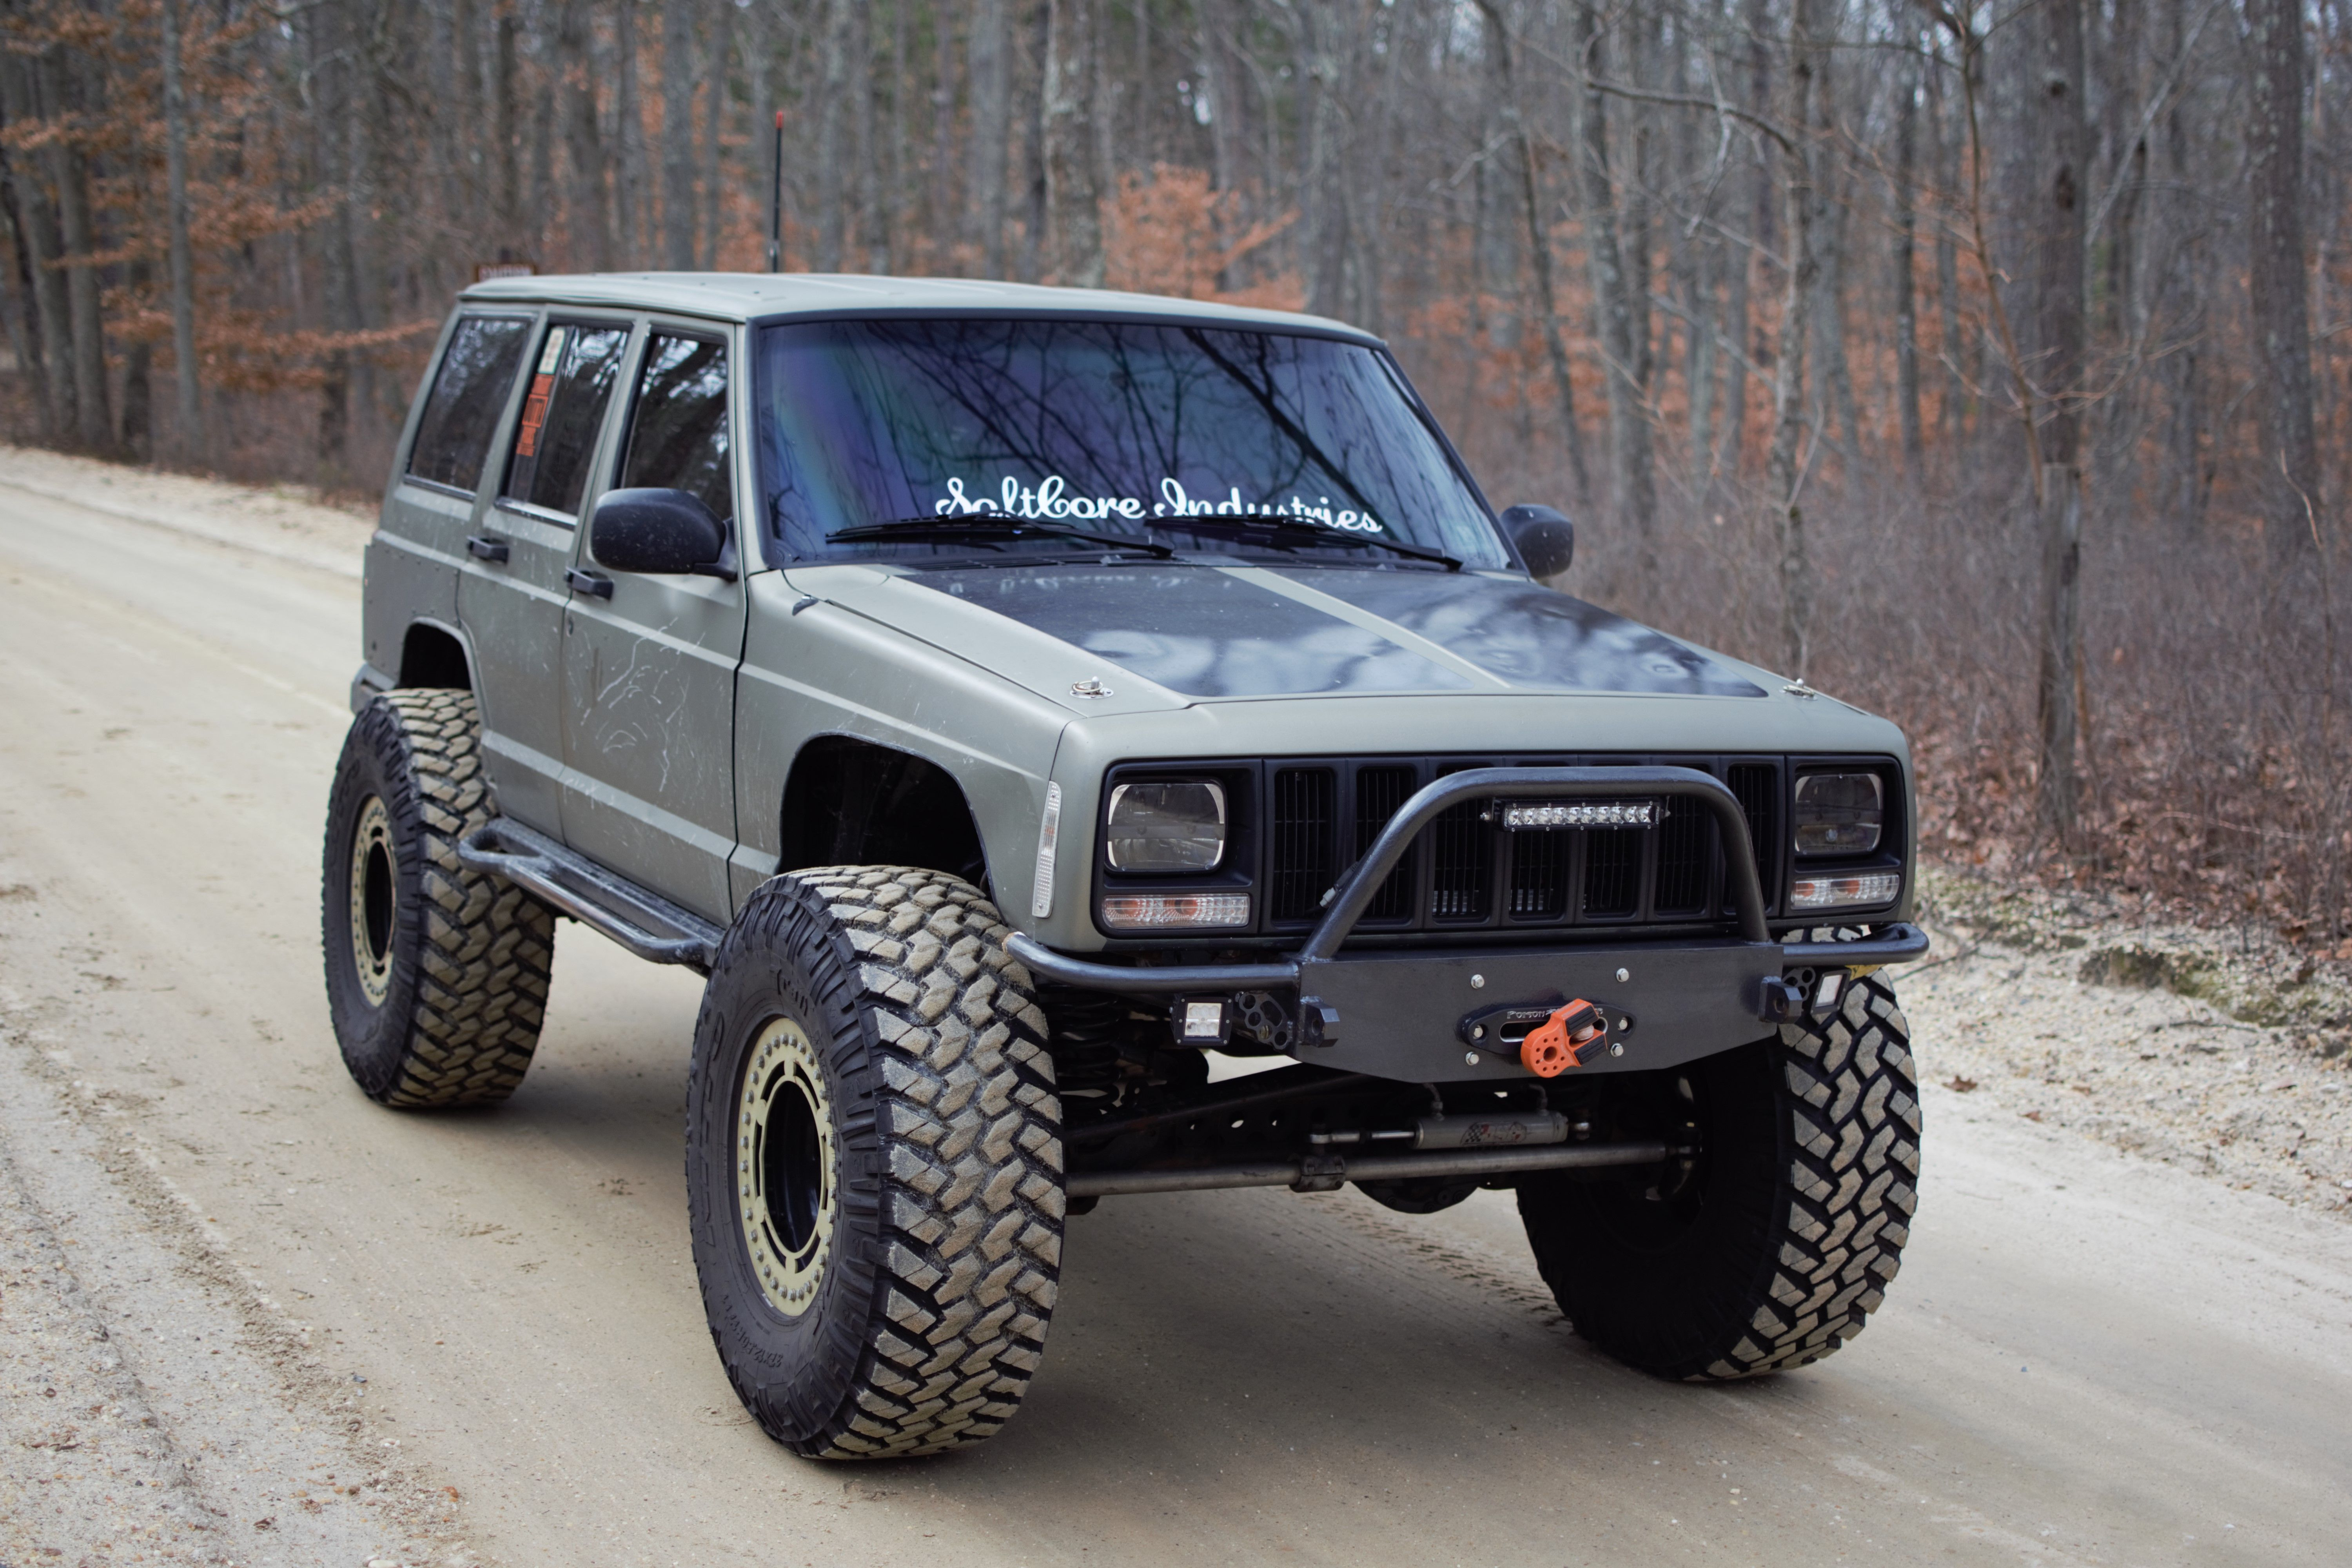 Recessed Stubby Winch Bumper Jeep Cherokee Xj Jeep Cherokee Xj Jeep Xj Jeep Xj Mods